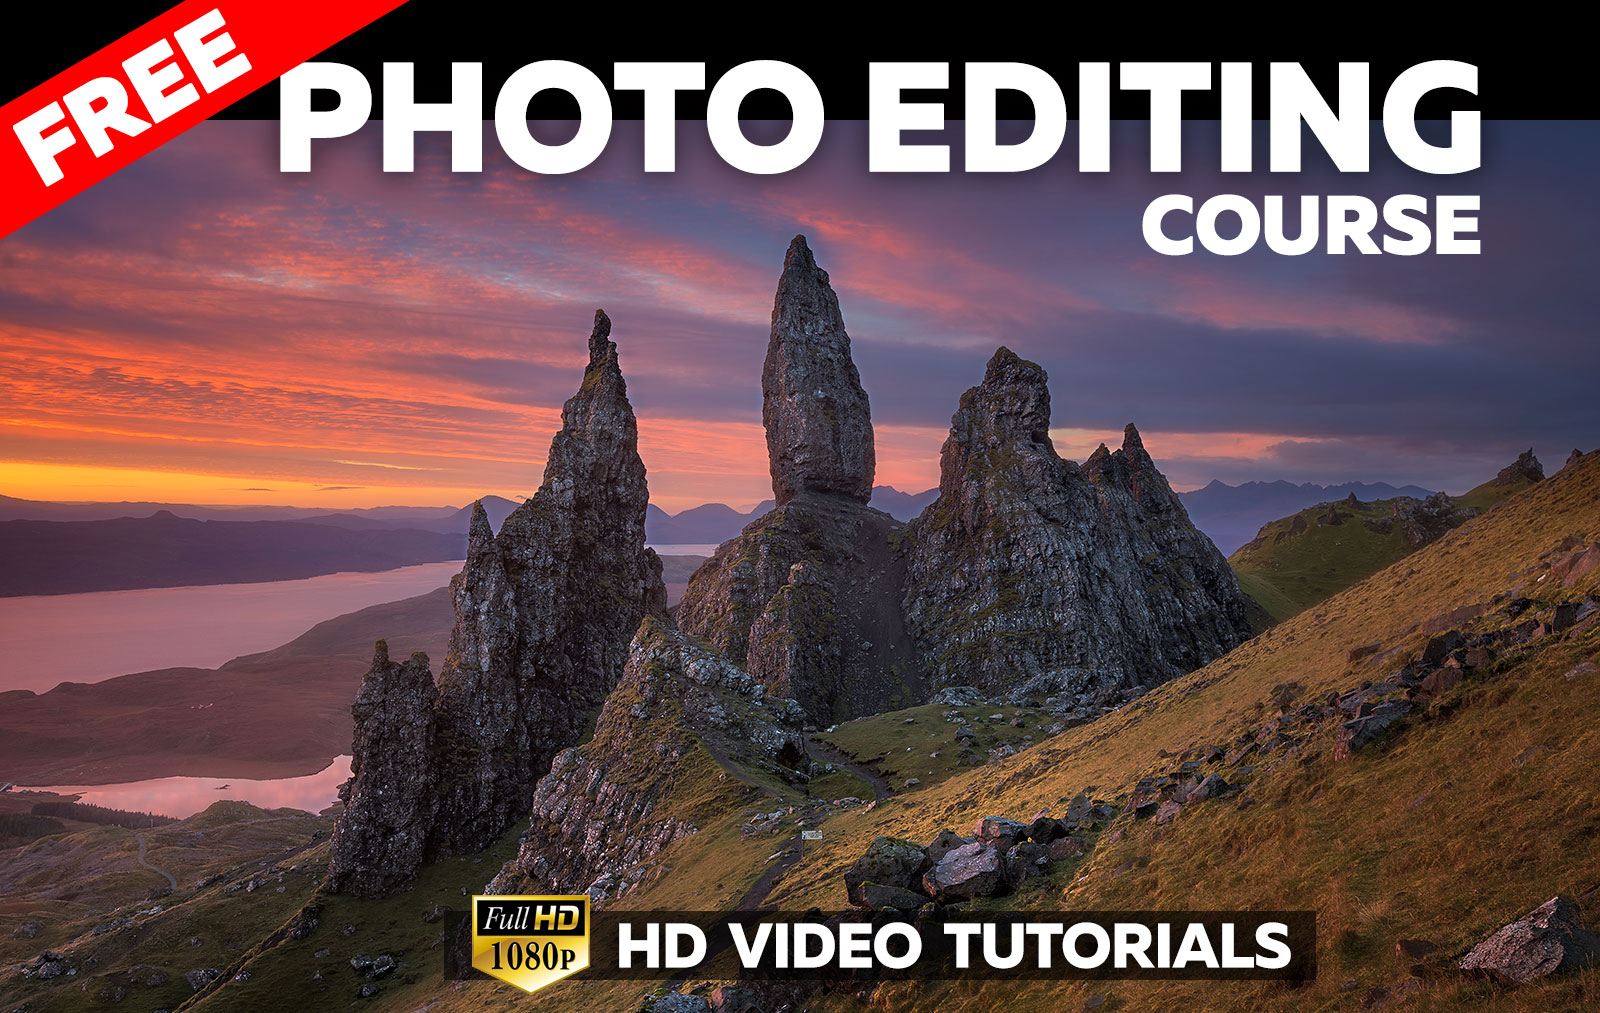 Free Photo Editing Course